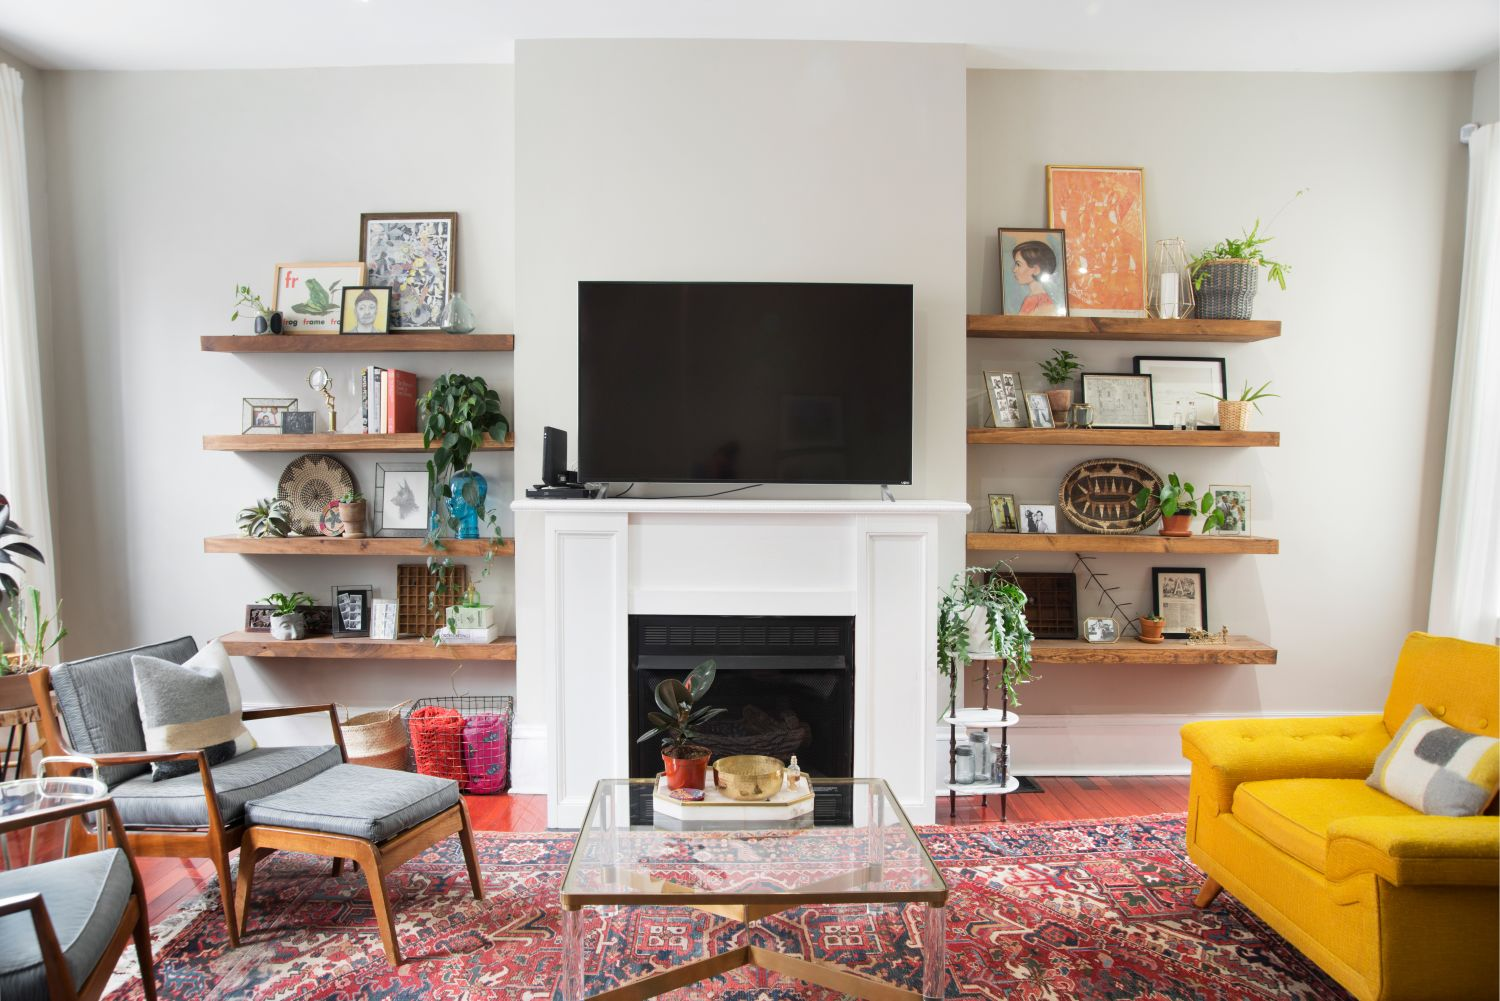 11 Impressive Ways to Style Your Floating Shelves